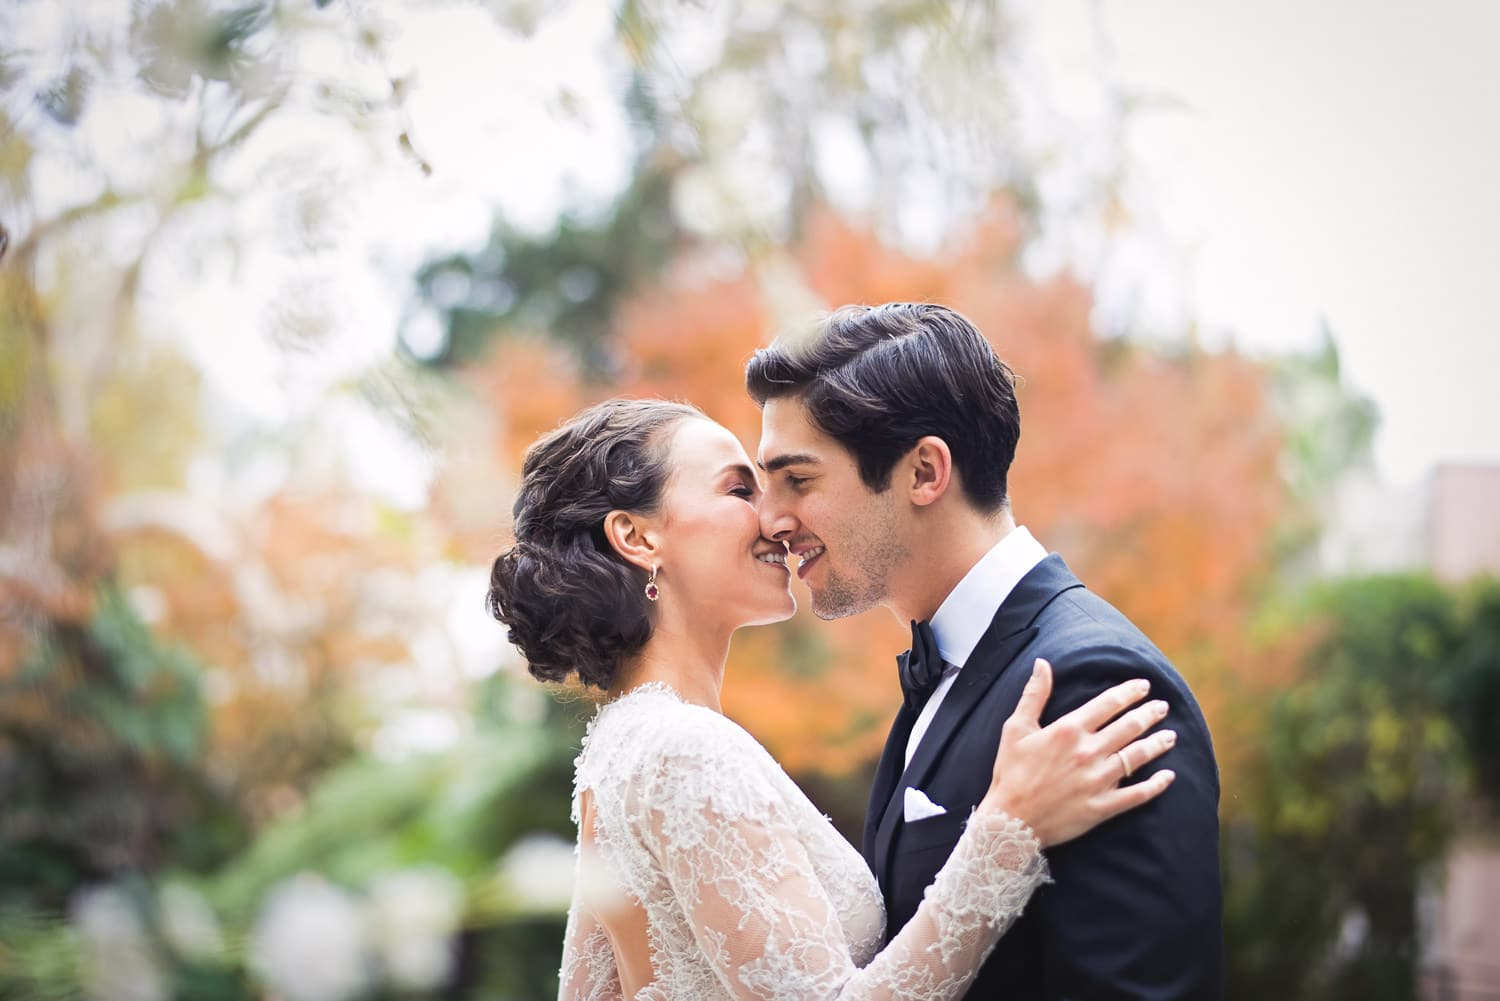 Wedding kiss with fall foliage in background at Hotel Bel-Air